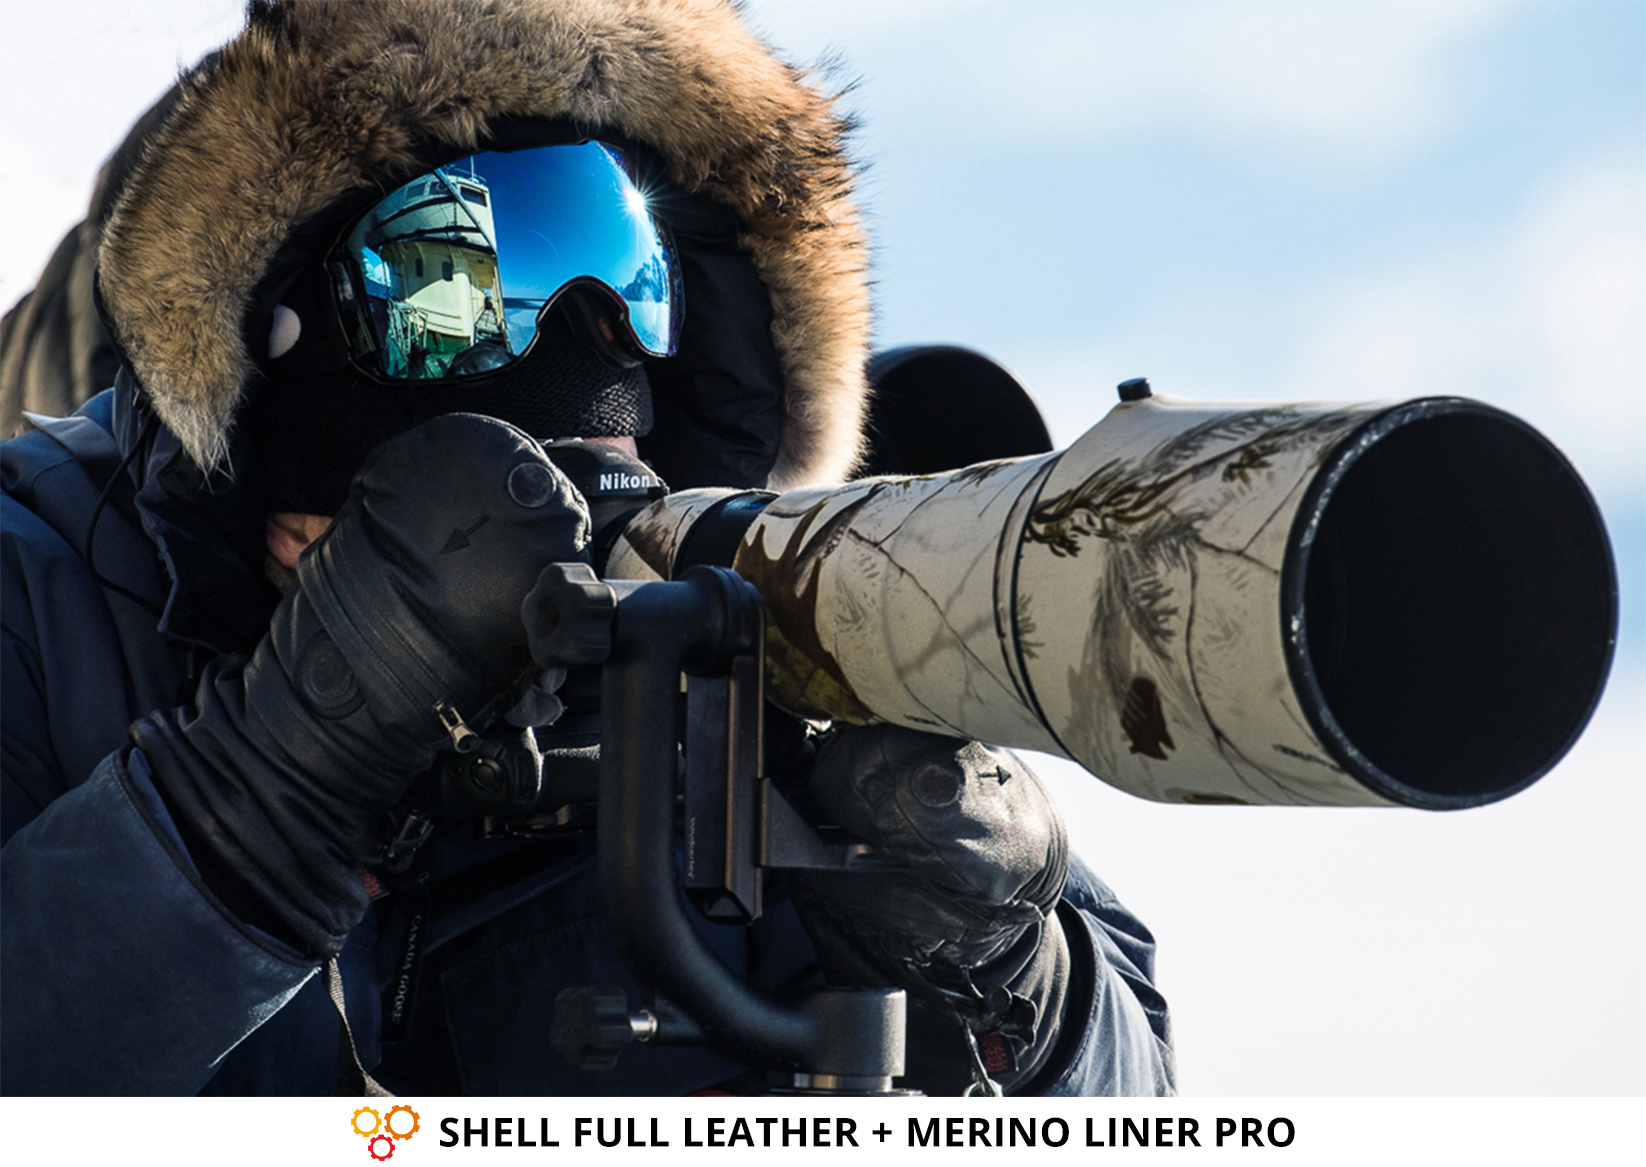 Photographe & gants cuir SHELL FULL LEATHER + gants merinos de THE HEAT COMPANY avec appareil photo Nikon